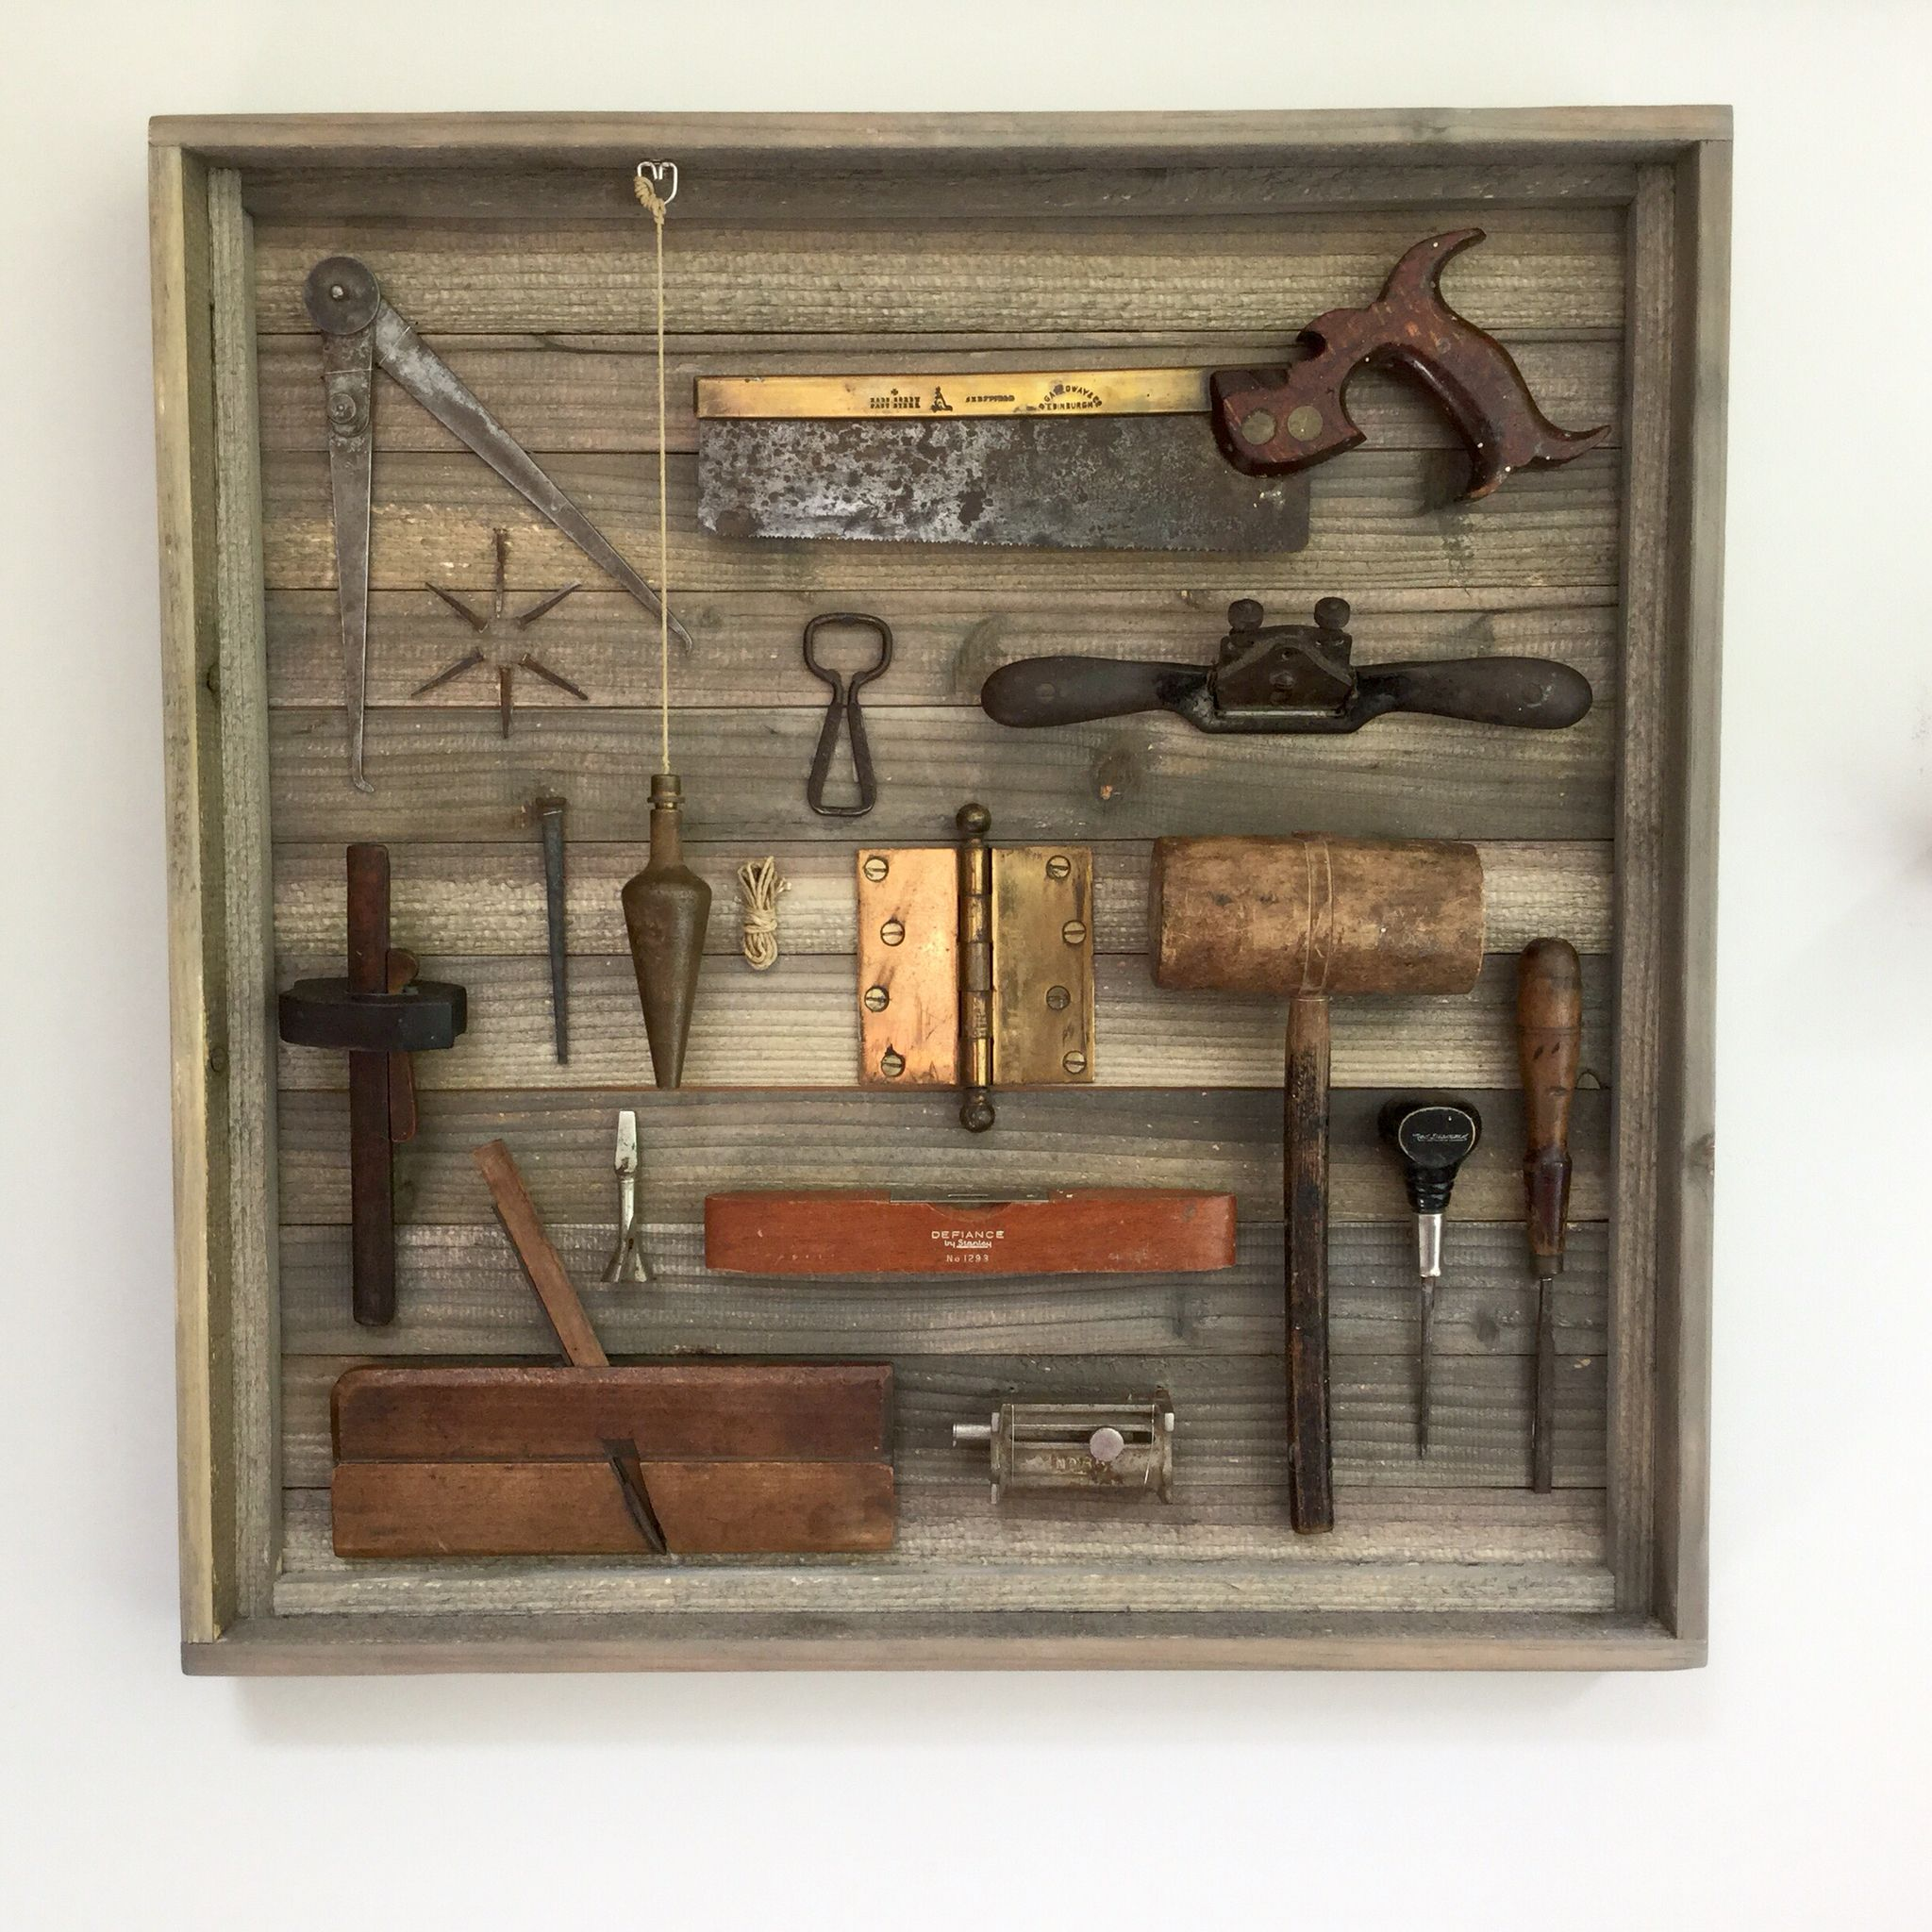 In the kitchen antique wrenches are used as cabinet door handles and - Vintage Tool Display